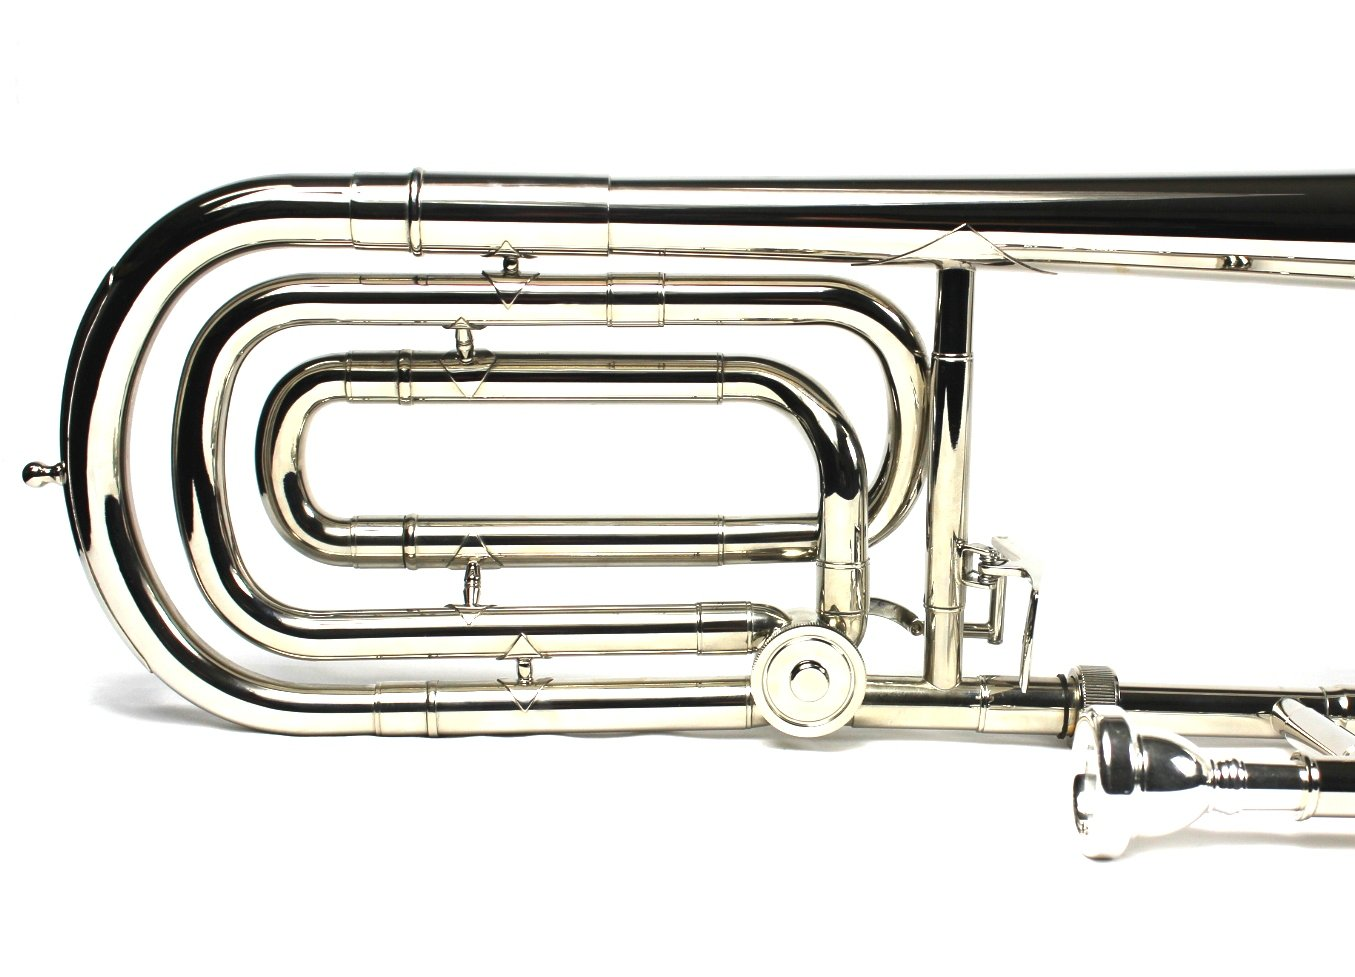 Brand New Bb/F Bass Trombone w/ Case and Mouthpiece- Nickel Plated Finish by Moz (Image #6)